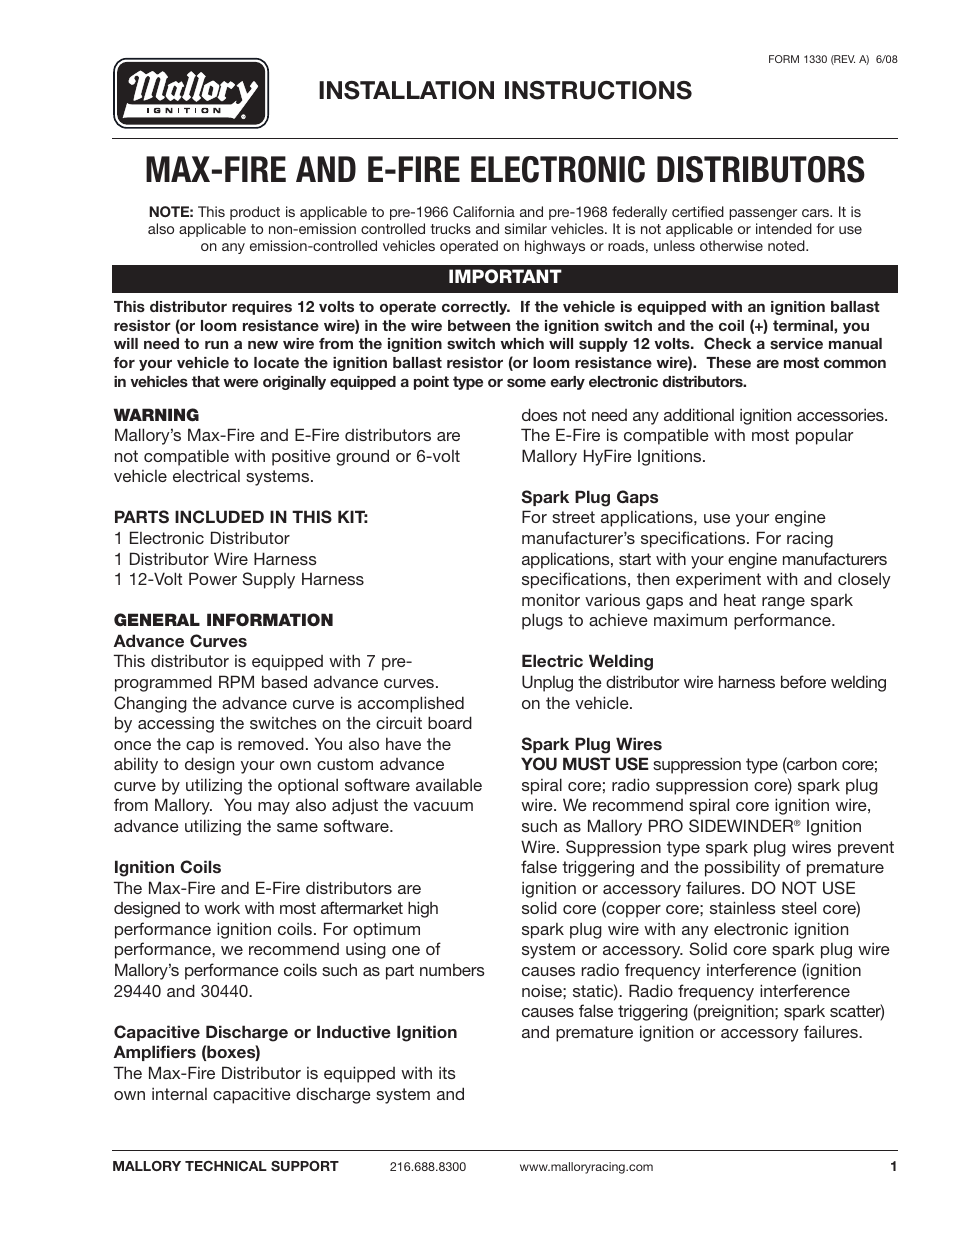 Mallory High Fire Wiring Diagram - Wiring Diagram G11 on